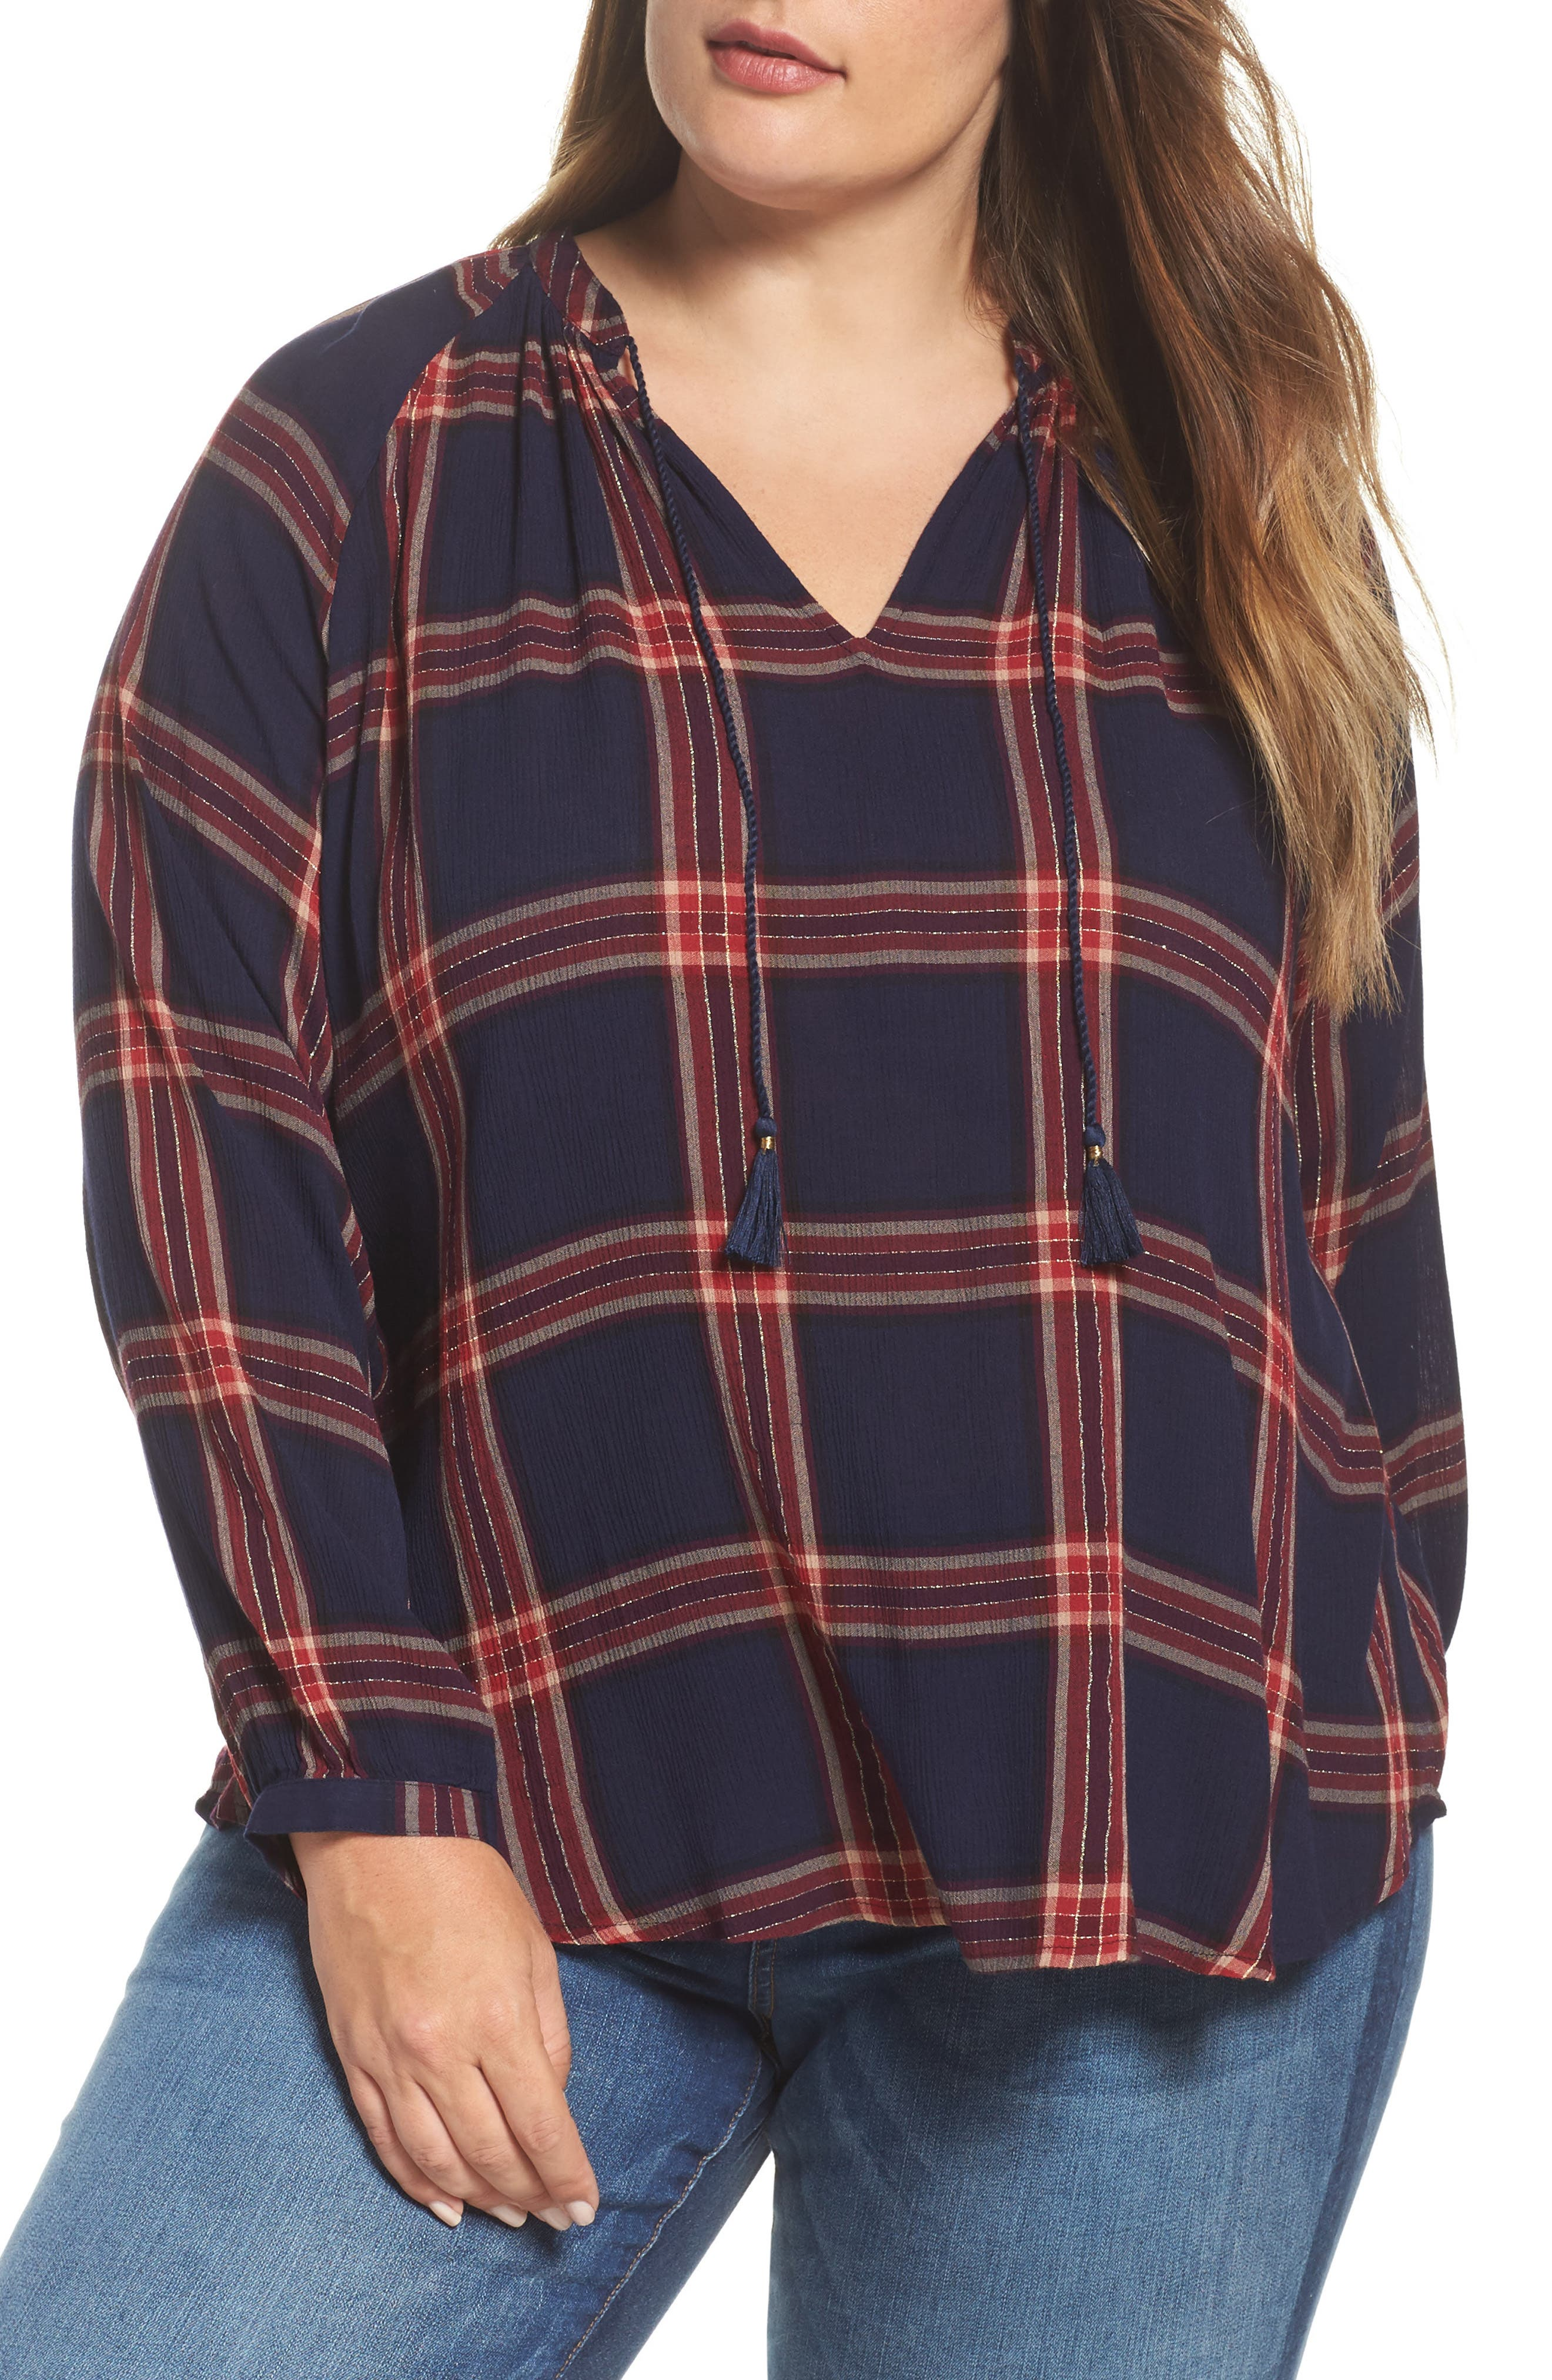 Alternate Image 1 Selected - Lucky Brand Plaid Cotton Peasant Top (Plus Size)